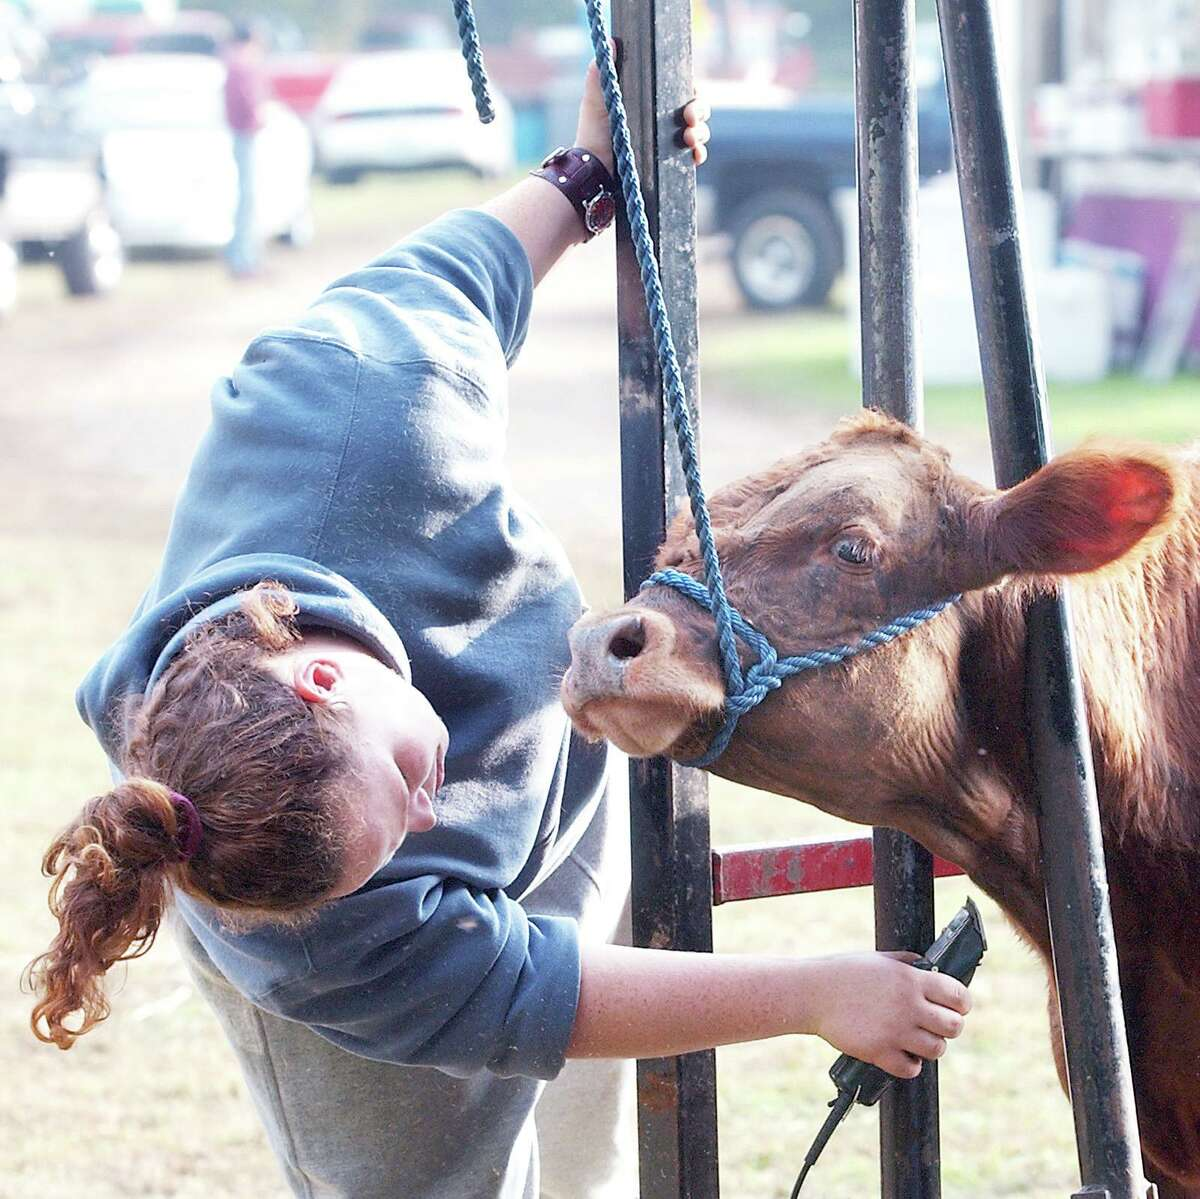 The Portland Agricultural Fair, which was canceled in 2020 due to the pandemic, is not taking place this weekend. Officials said the grounds need expensive infrastructure repairs.